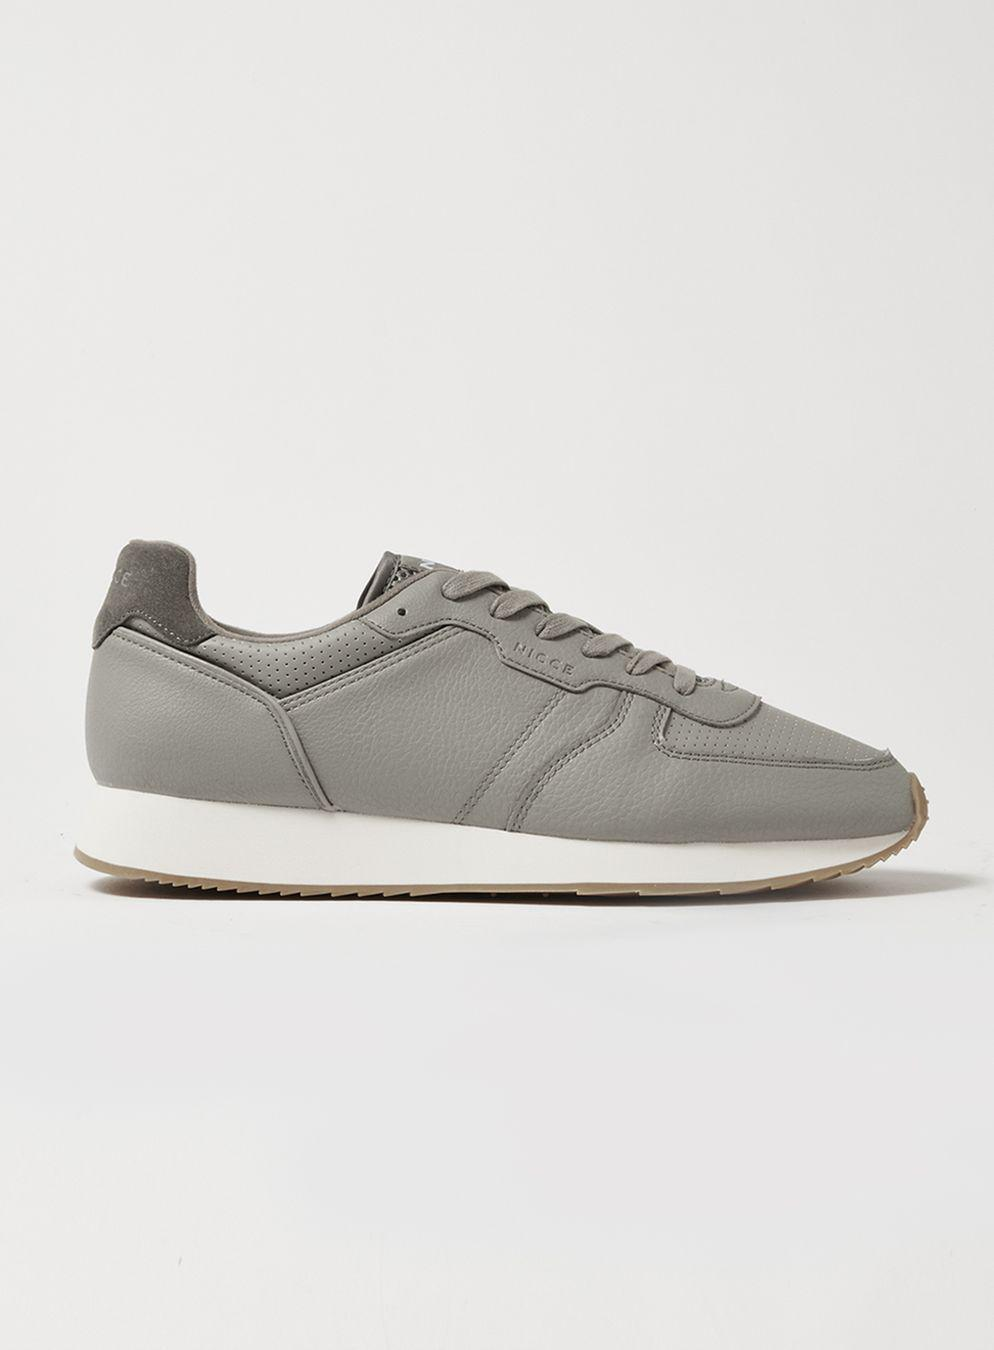 Nicce panacea trainers in black - Black Nicce London Buy Cheap Footlocker Pictures Cheap 100% Authentic Quality For Sale Free Shipping PiDfu